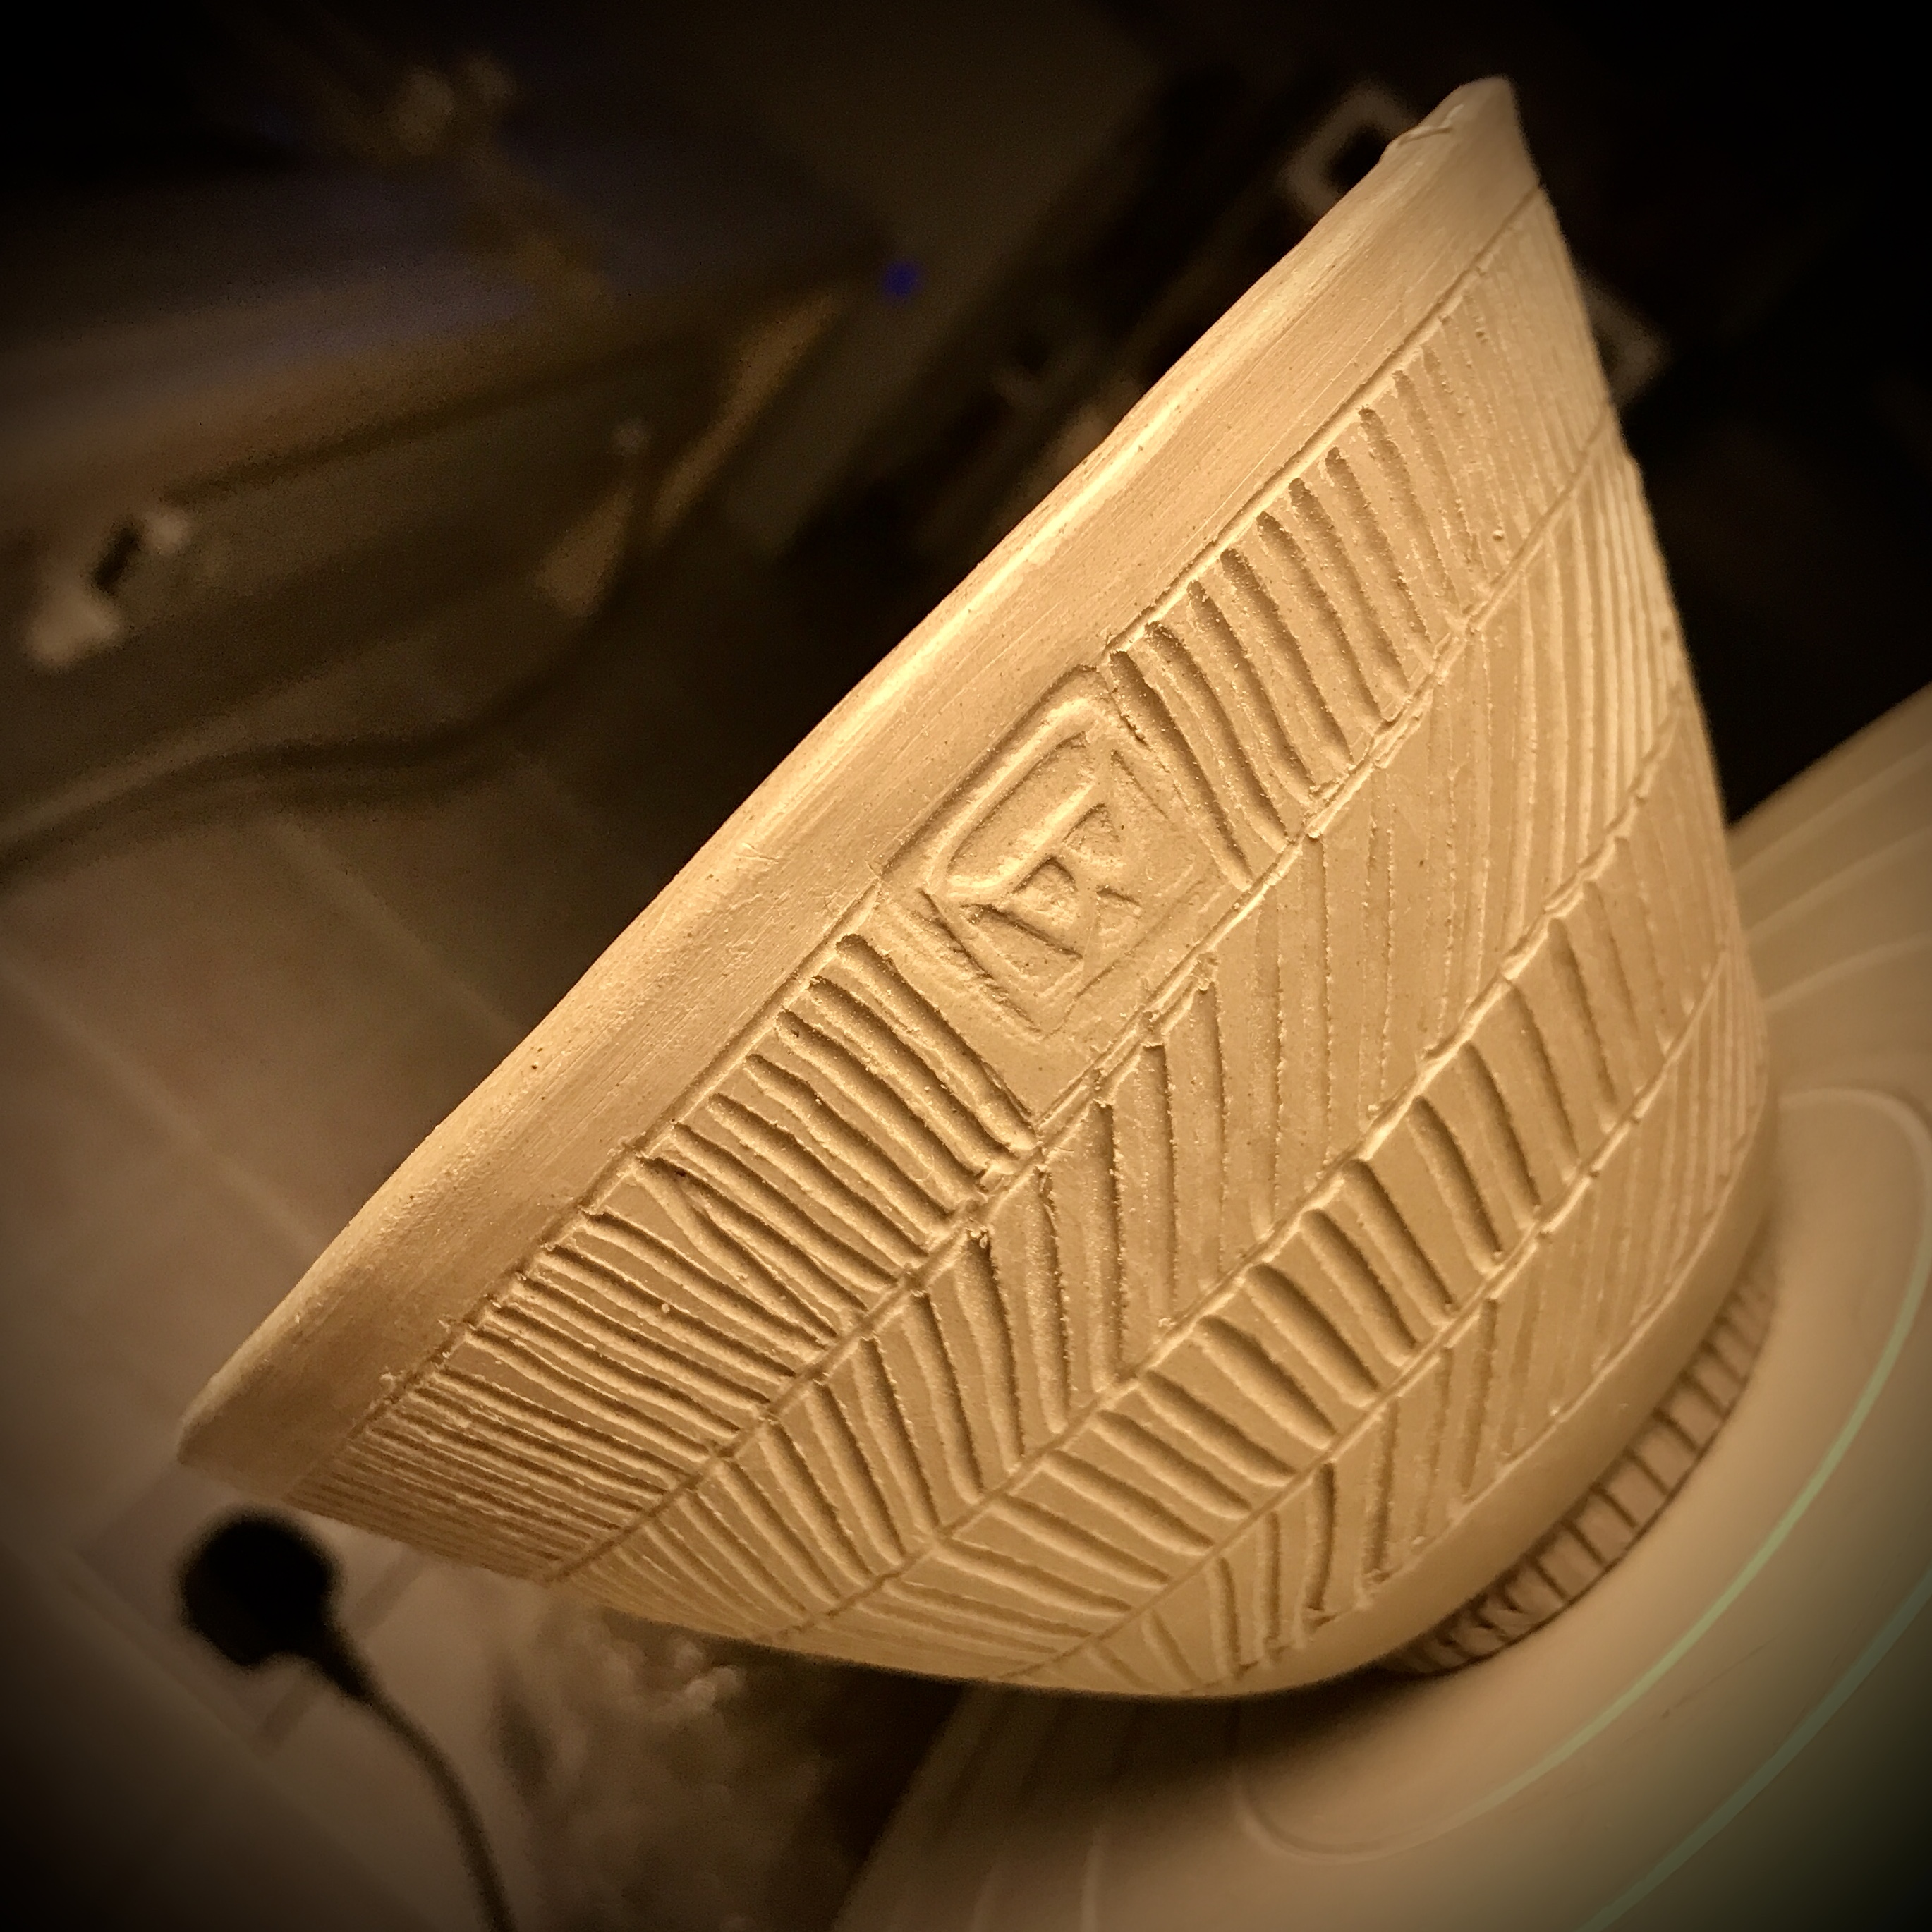 Carved bowl design